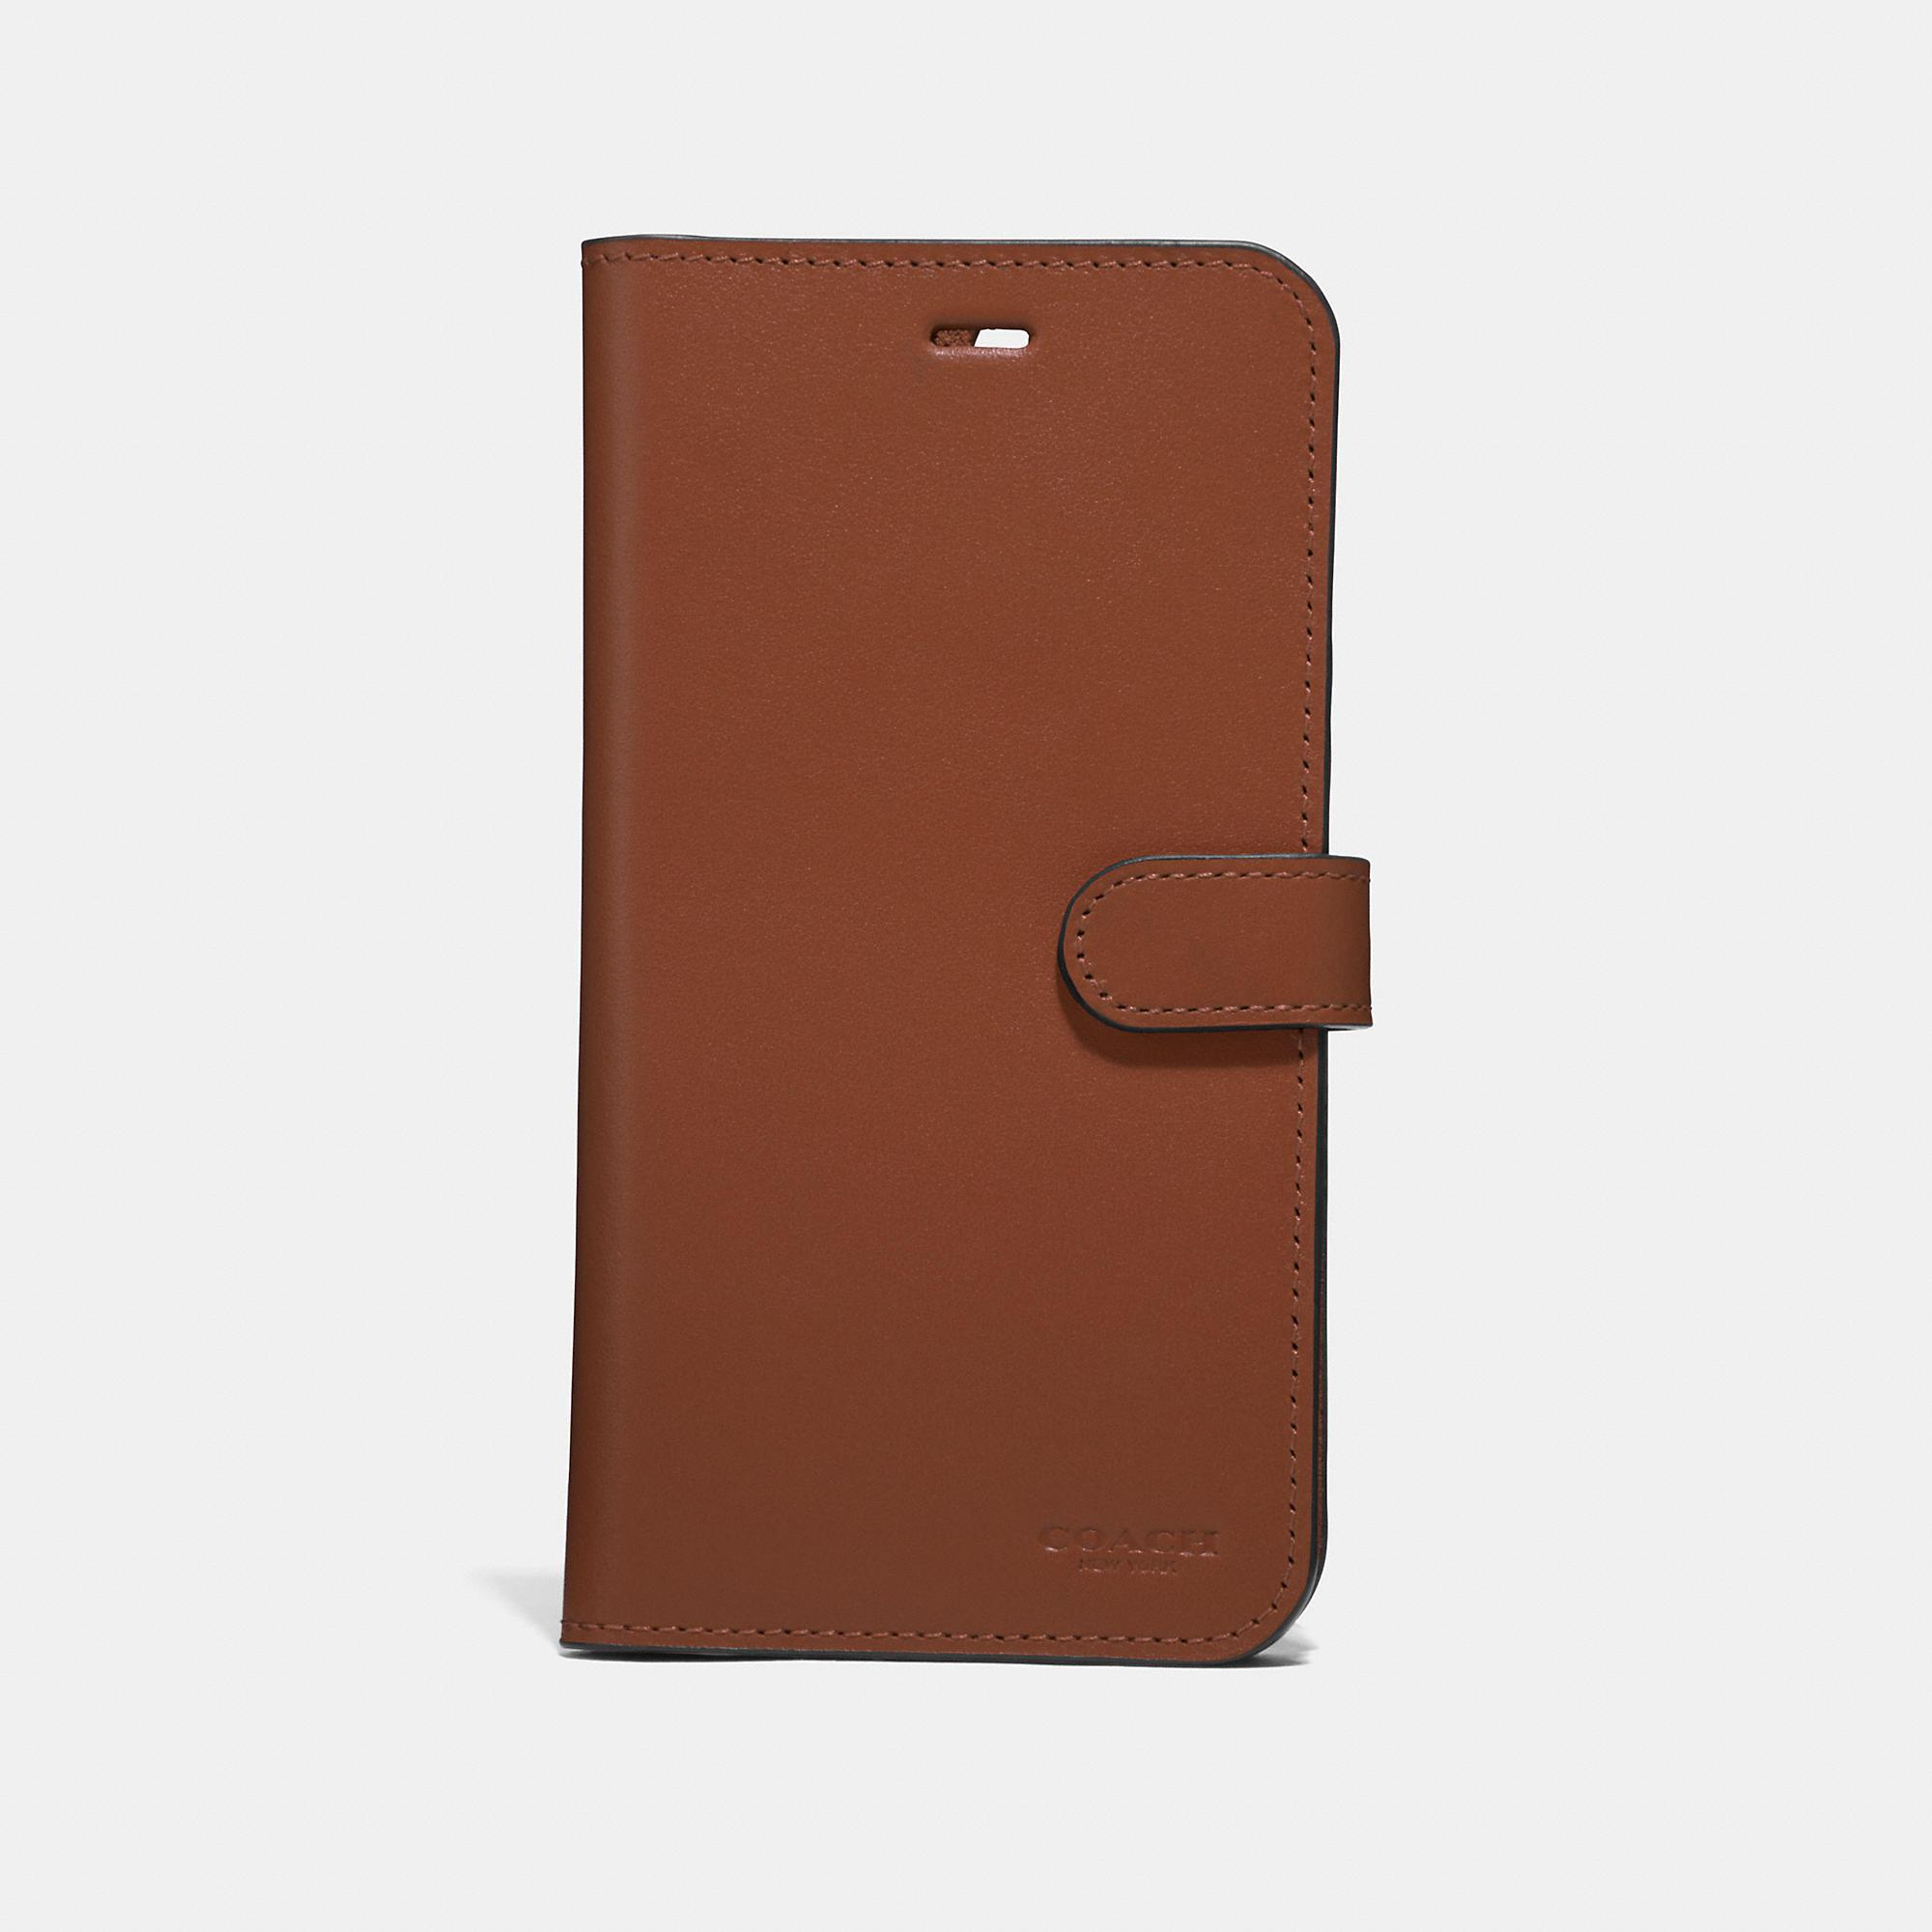 cheap for discount 9ab6d 1e867 COACH Iphone 7 Plus/8 Plus Folio in Brown - Lyst